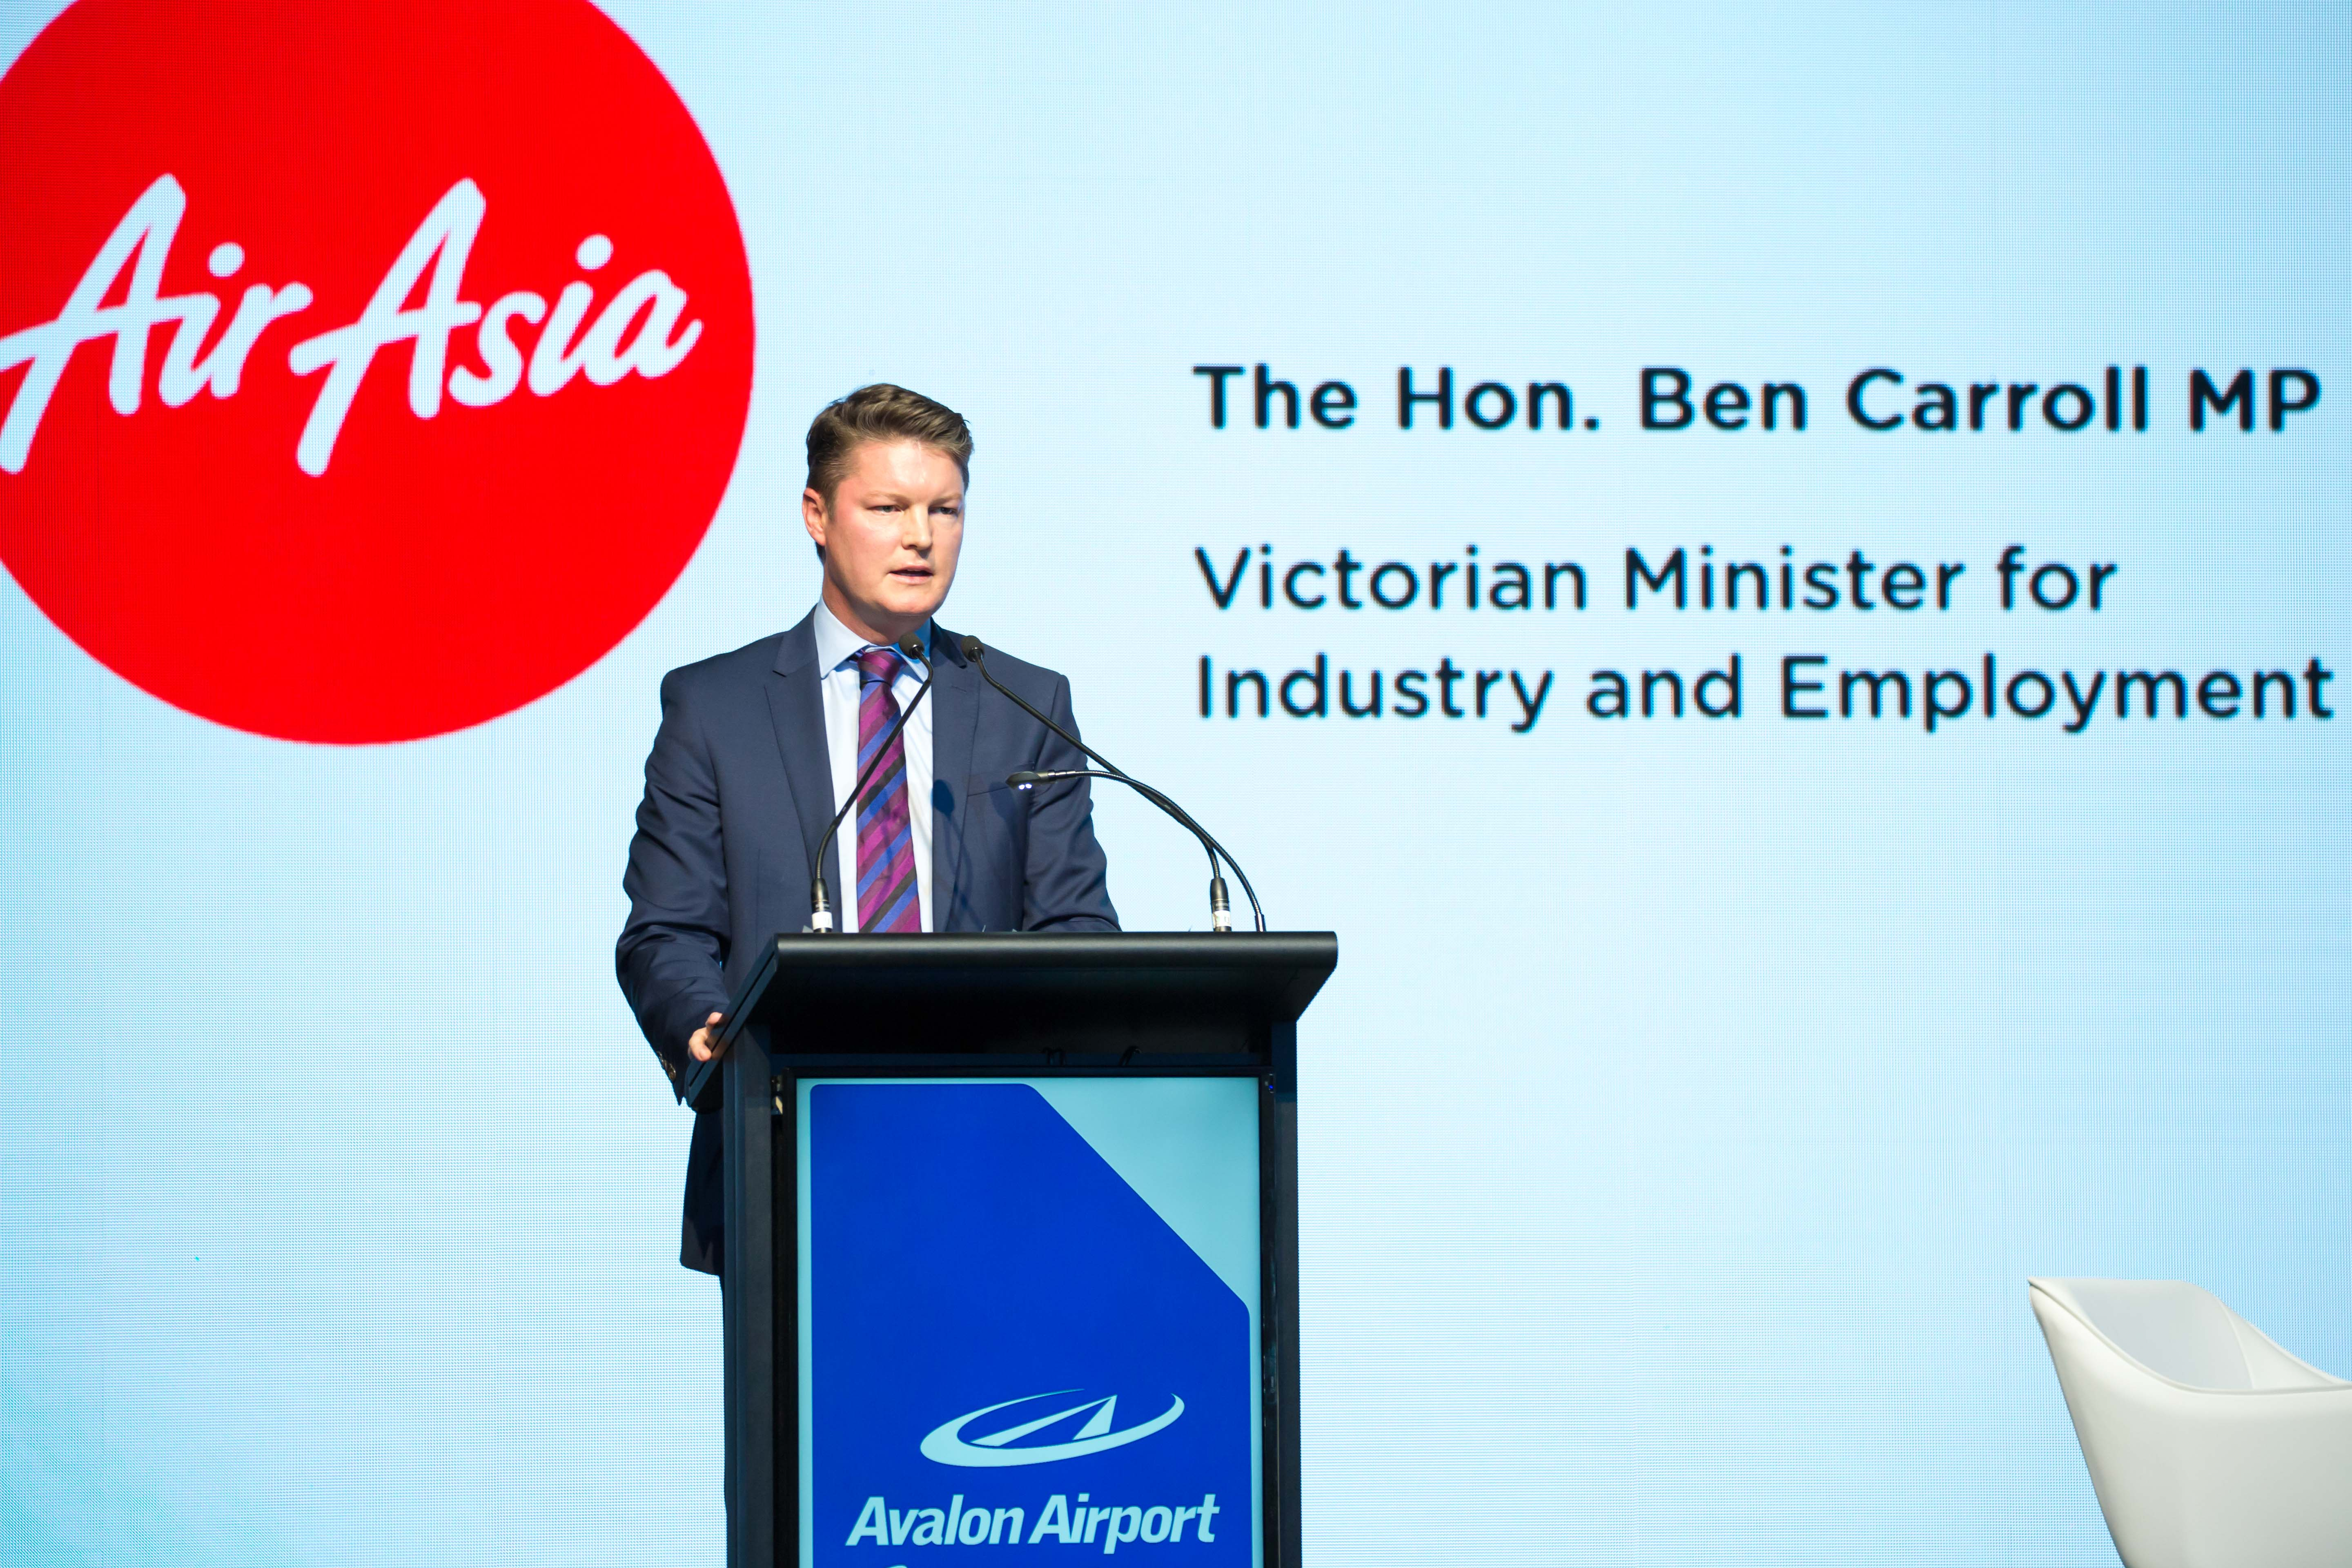 The Hon. Ben Carroll MP